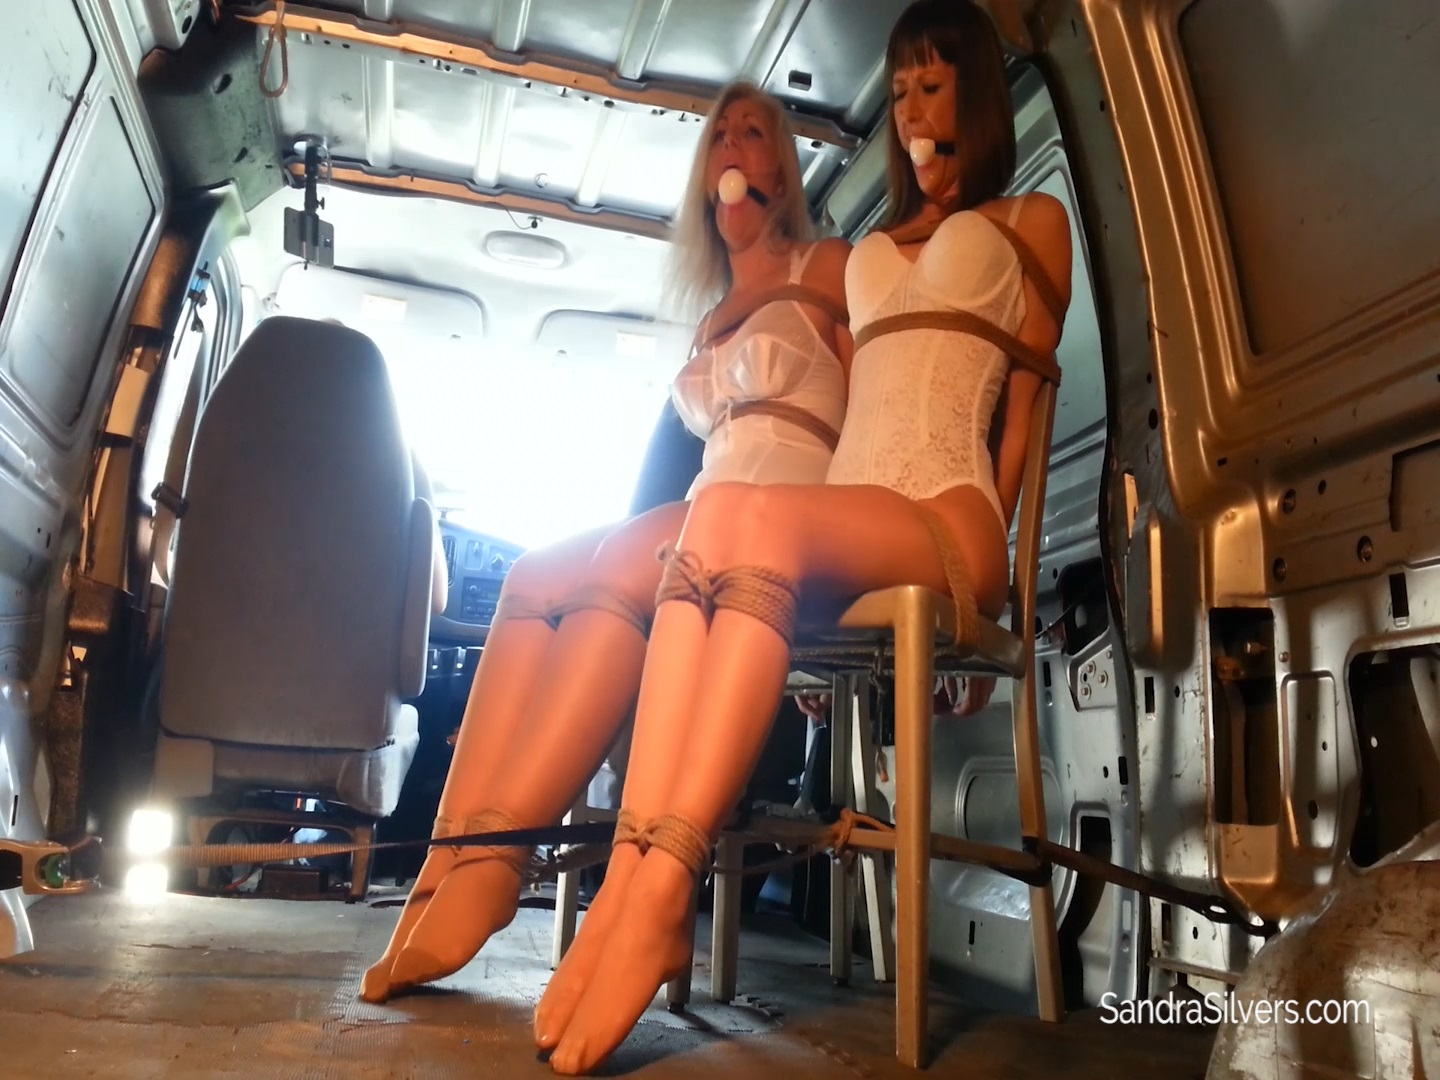 Nabbed Ballgagged Brides Stripped to Lingerie